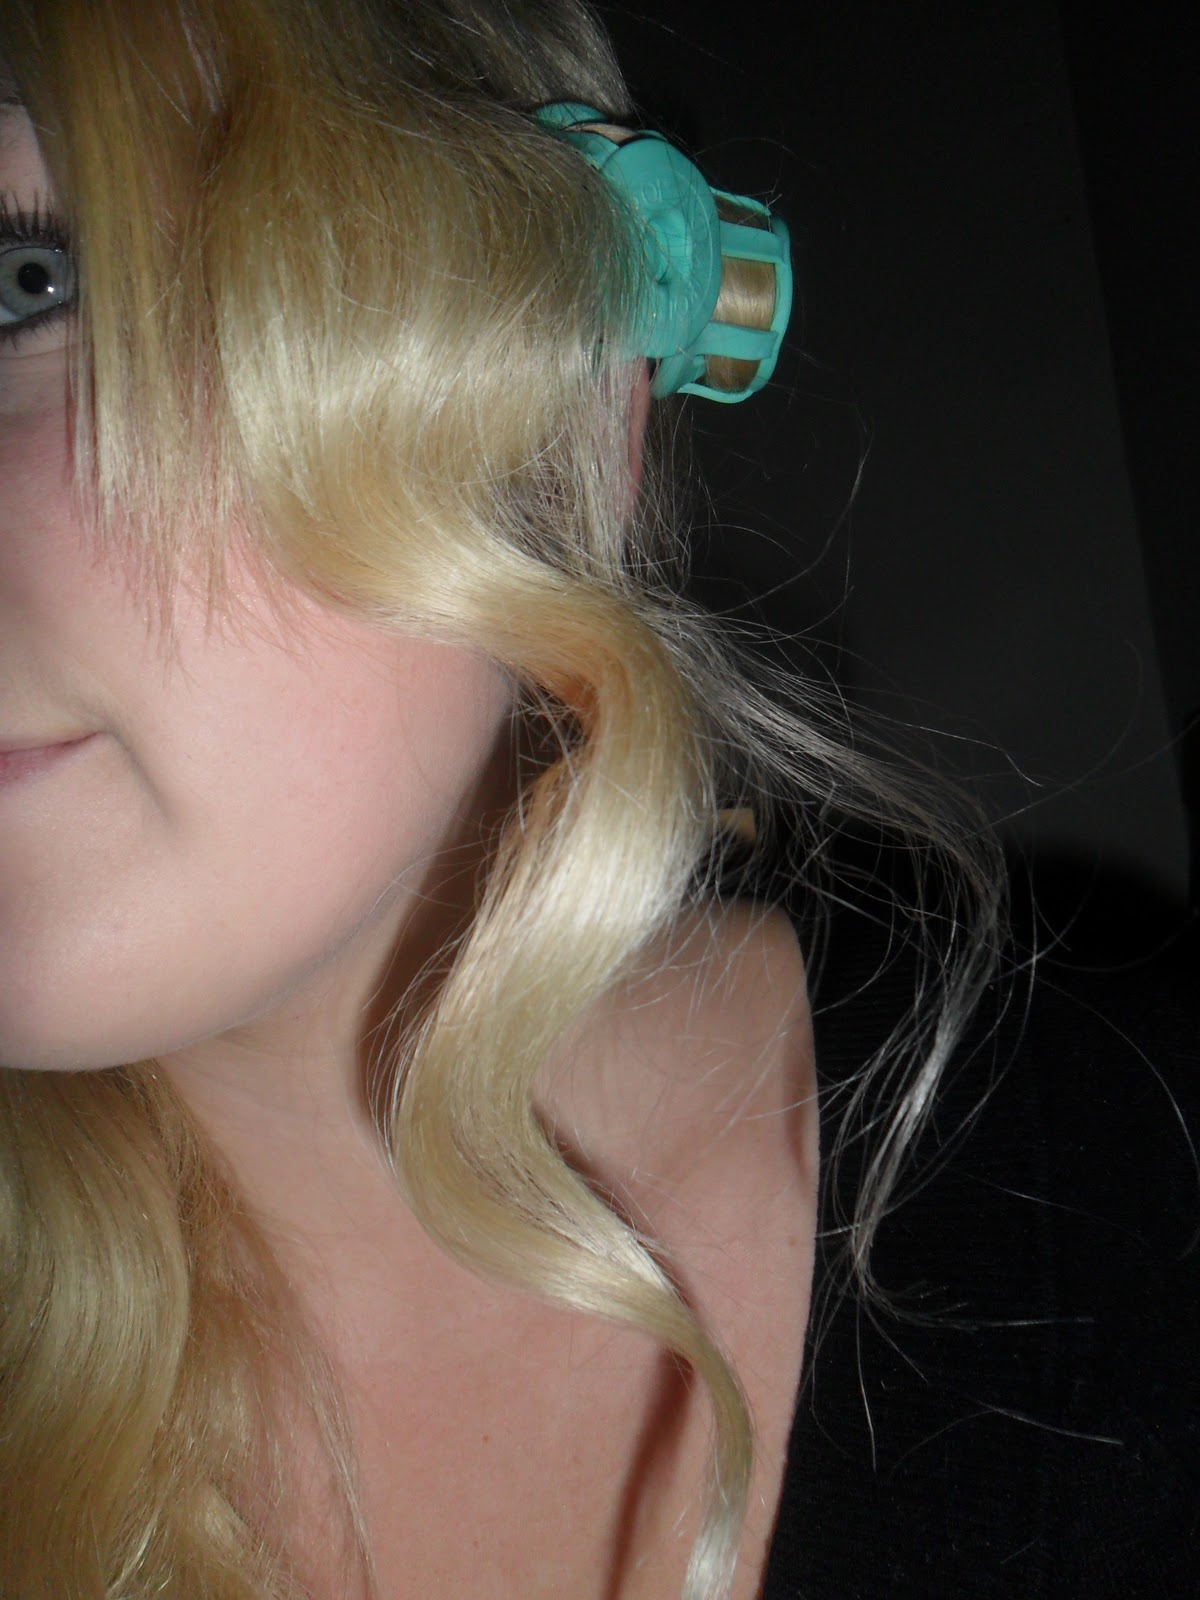 This Has To Be My Favourite Find Of The Whole Year You Do Not Understand How Much I Curling Hair But Love Curly Them